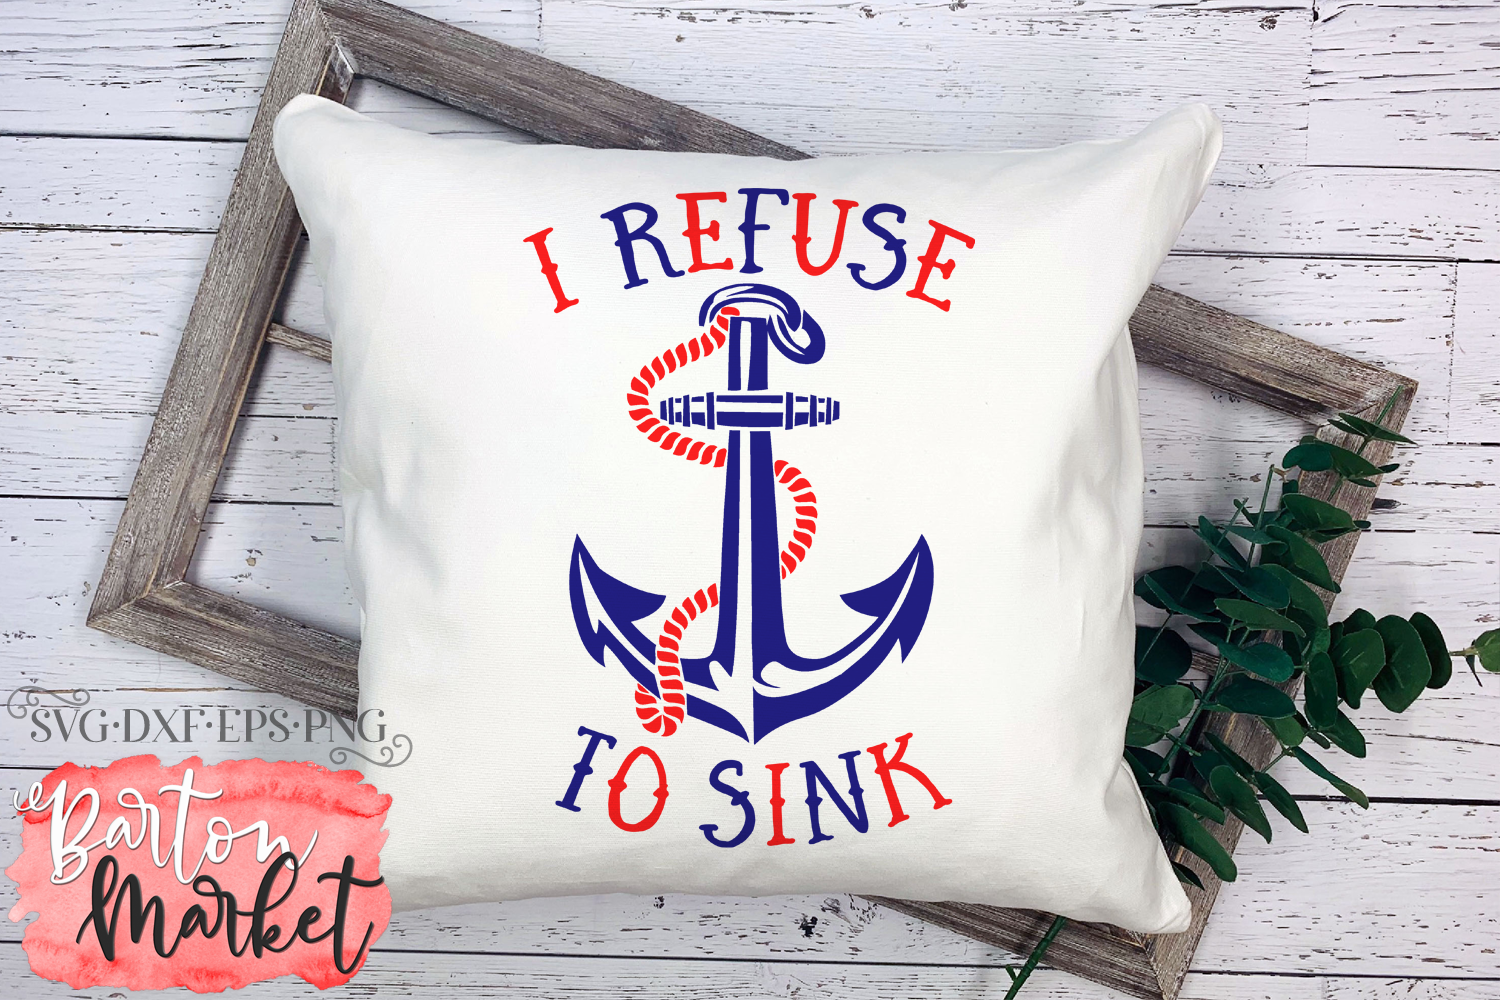 I Refuse To Sink SVG DXF EPS PNG example image 4